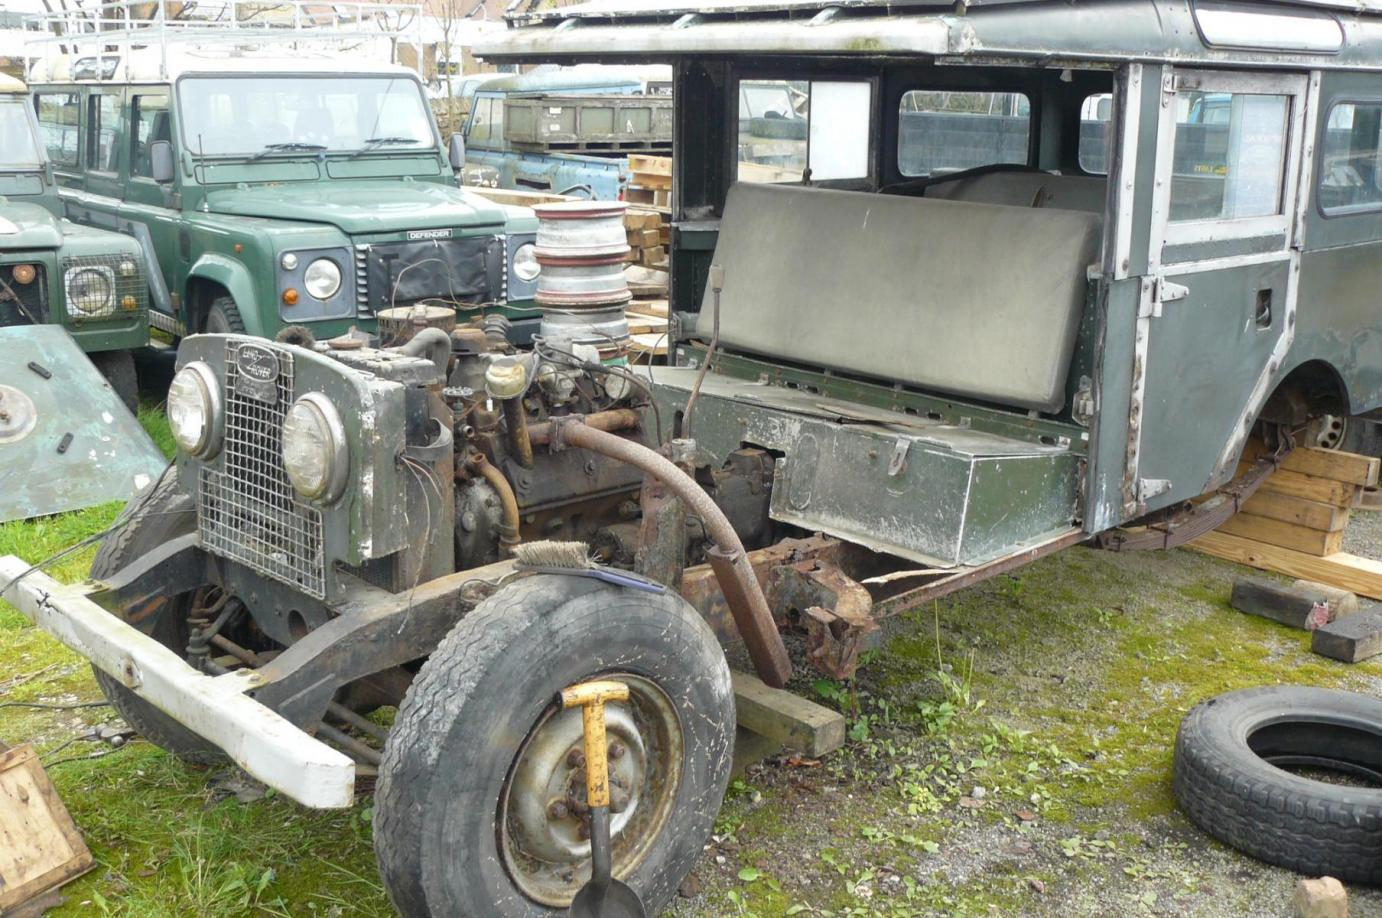 Land Rover 107 Station Wagon Recommisioning Over 3 Years Jake Vehicle To Trailer Wiring Australian Owners Remaining Series 1 With Engine Still In Position And Bulkhead Removed